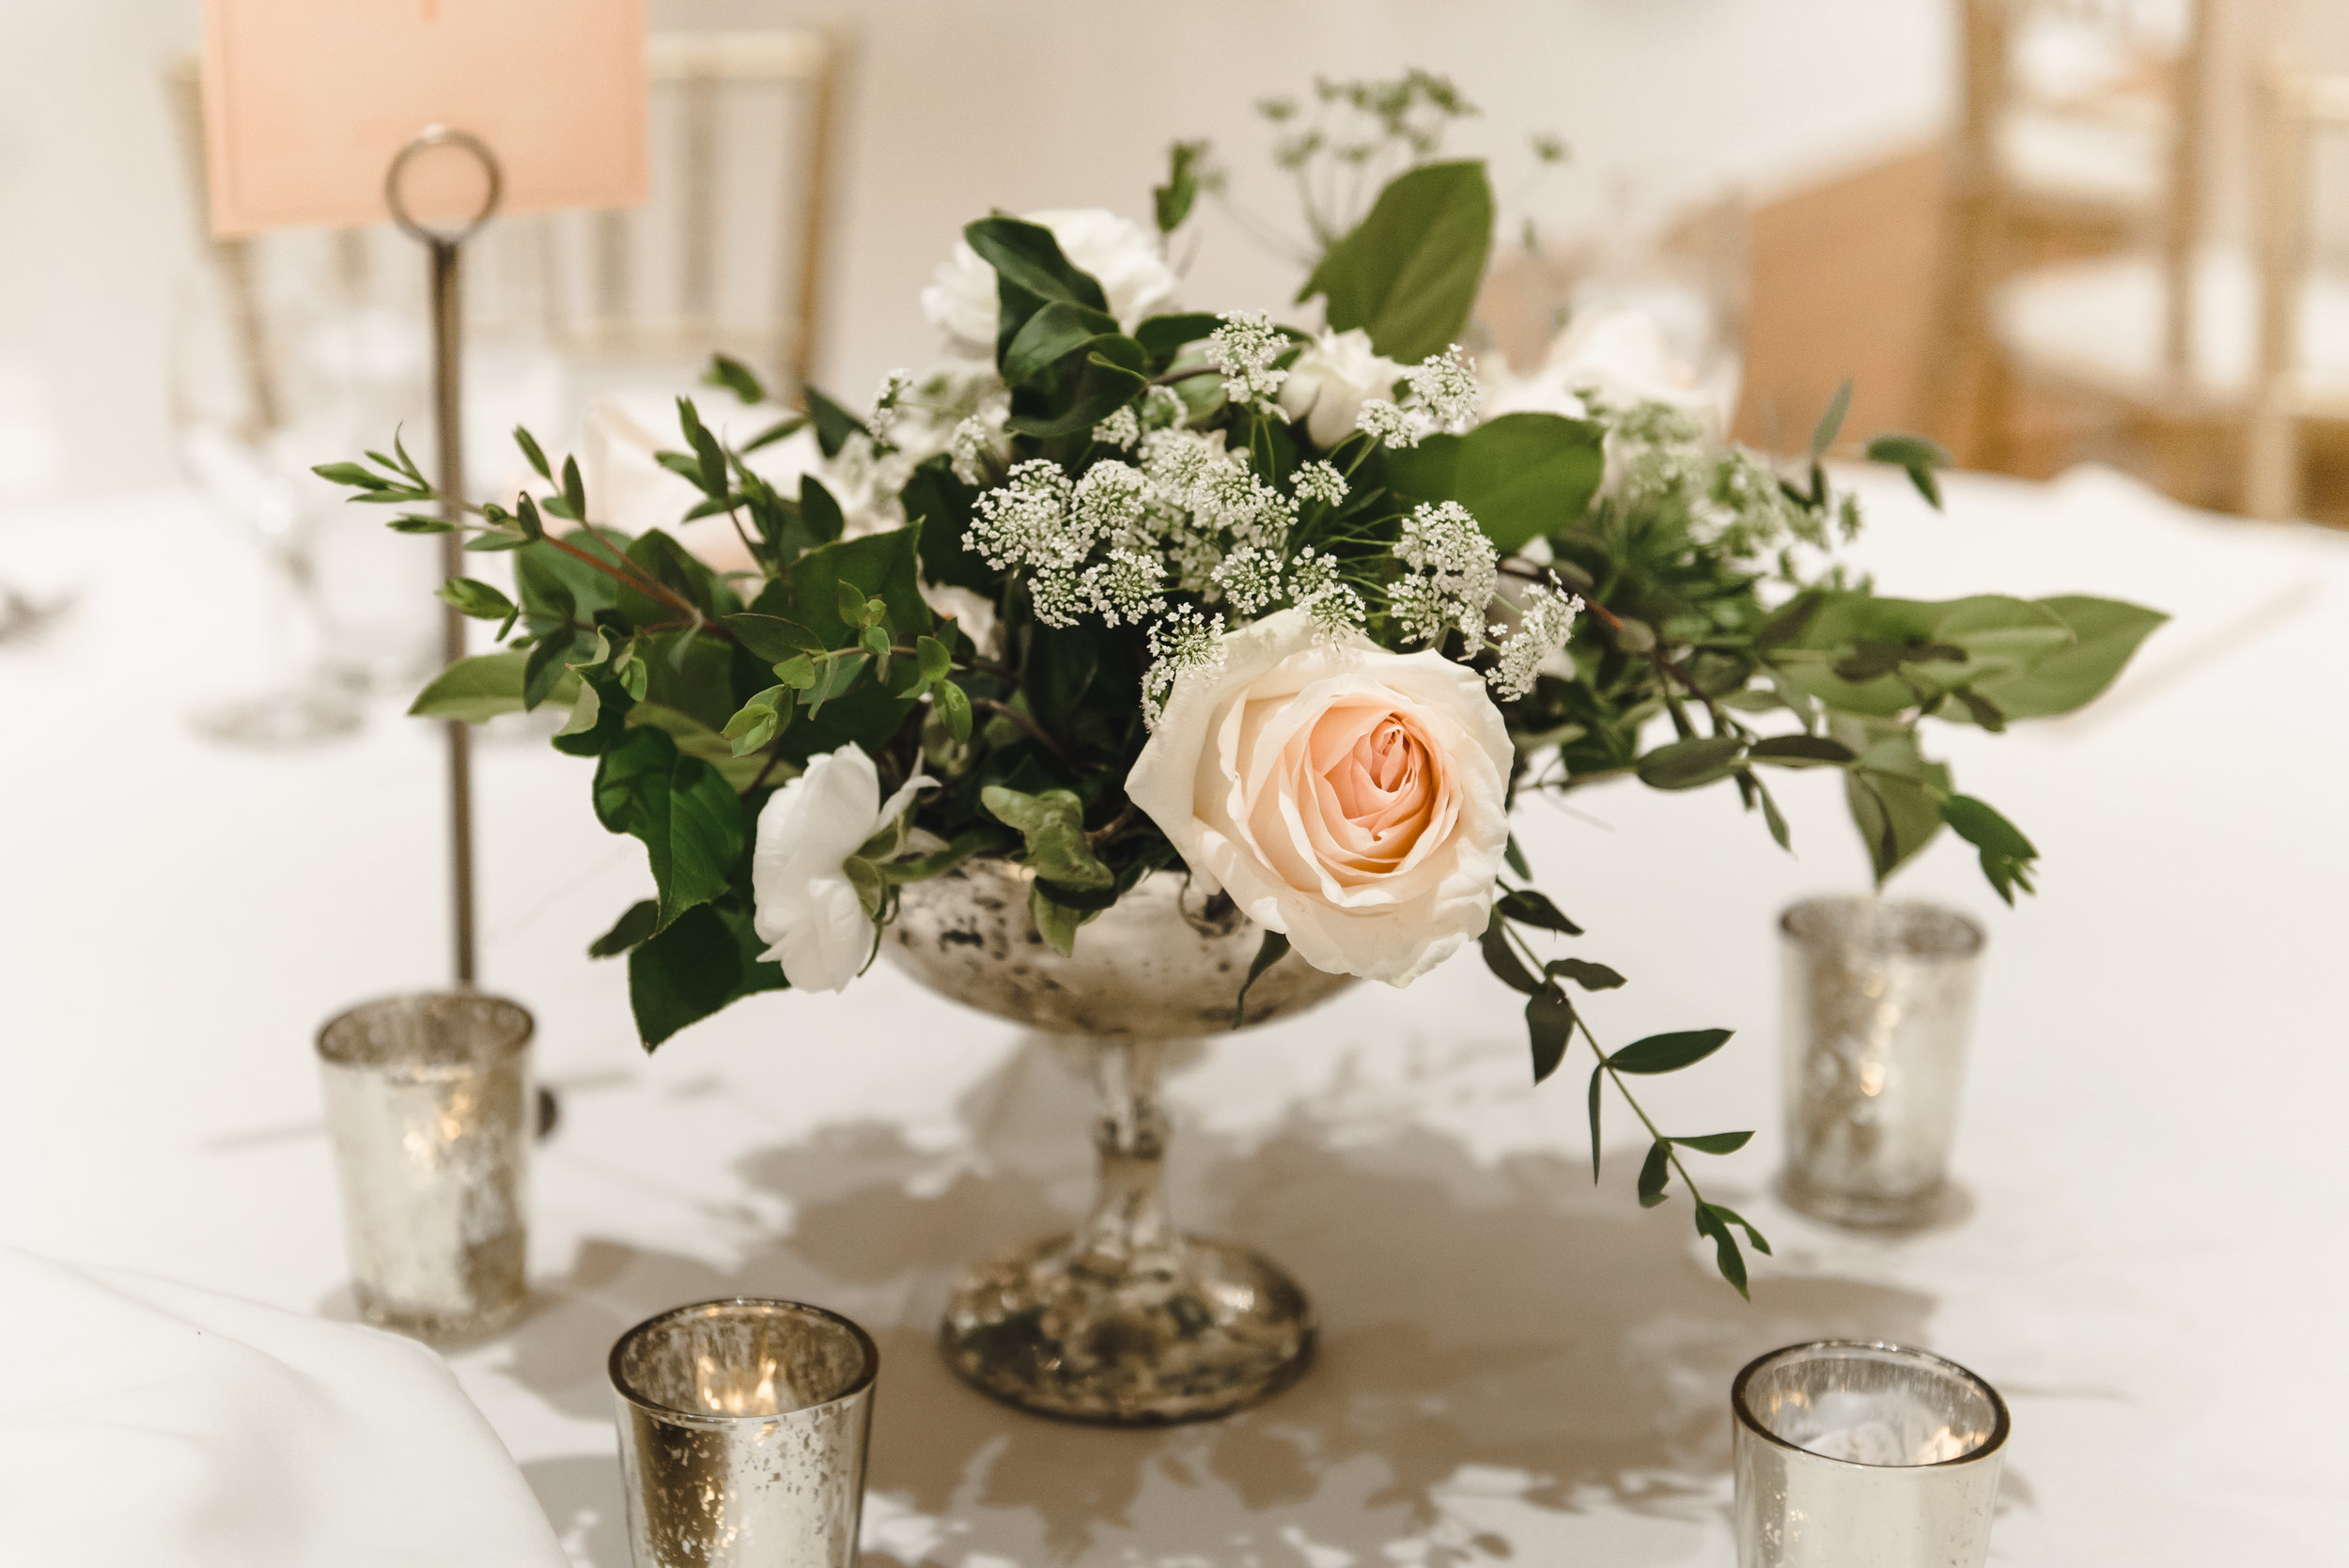 simple blush and cream centerpiece at wedding #lrqcfloral #centerpiece .jpg